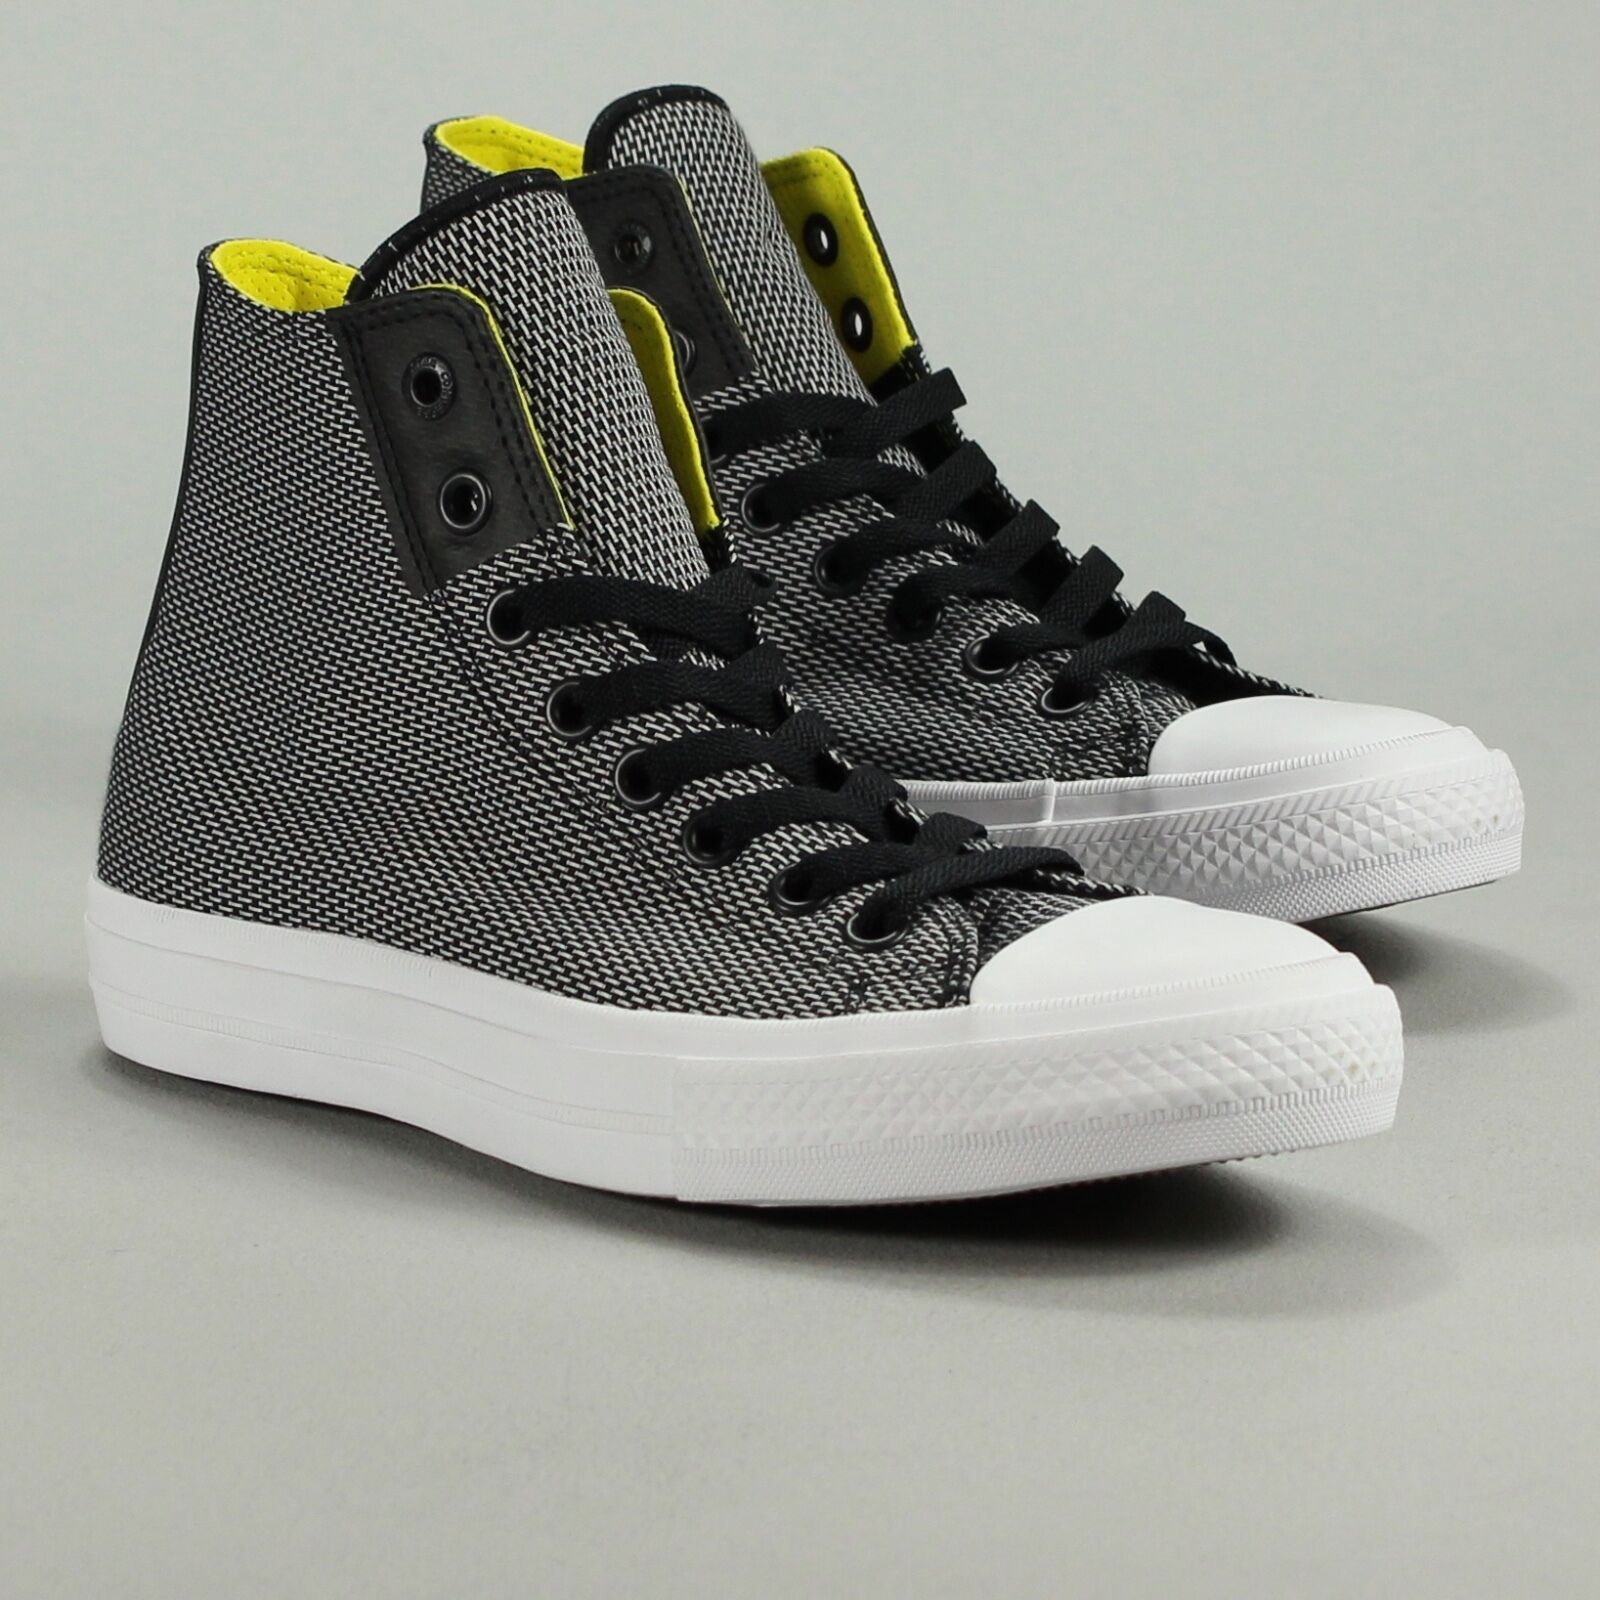 Converse all star hi ii baskets taille new in box taille uk taille baskets 6,7,8,9,10 36c501